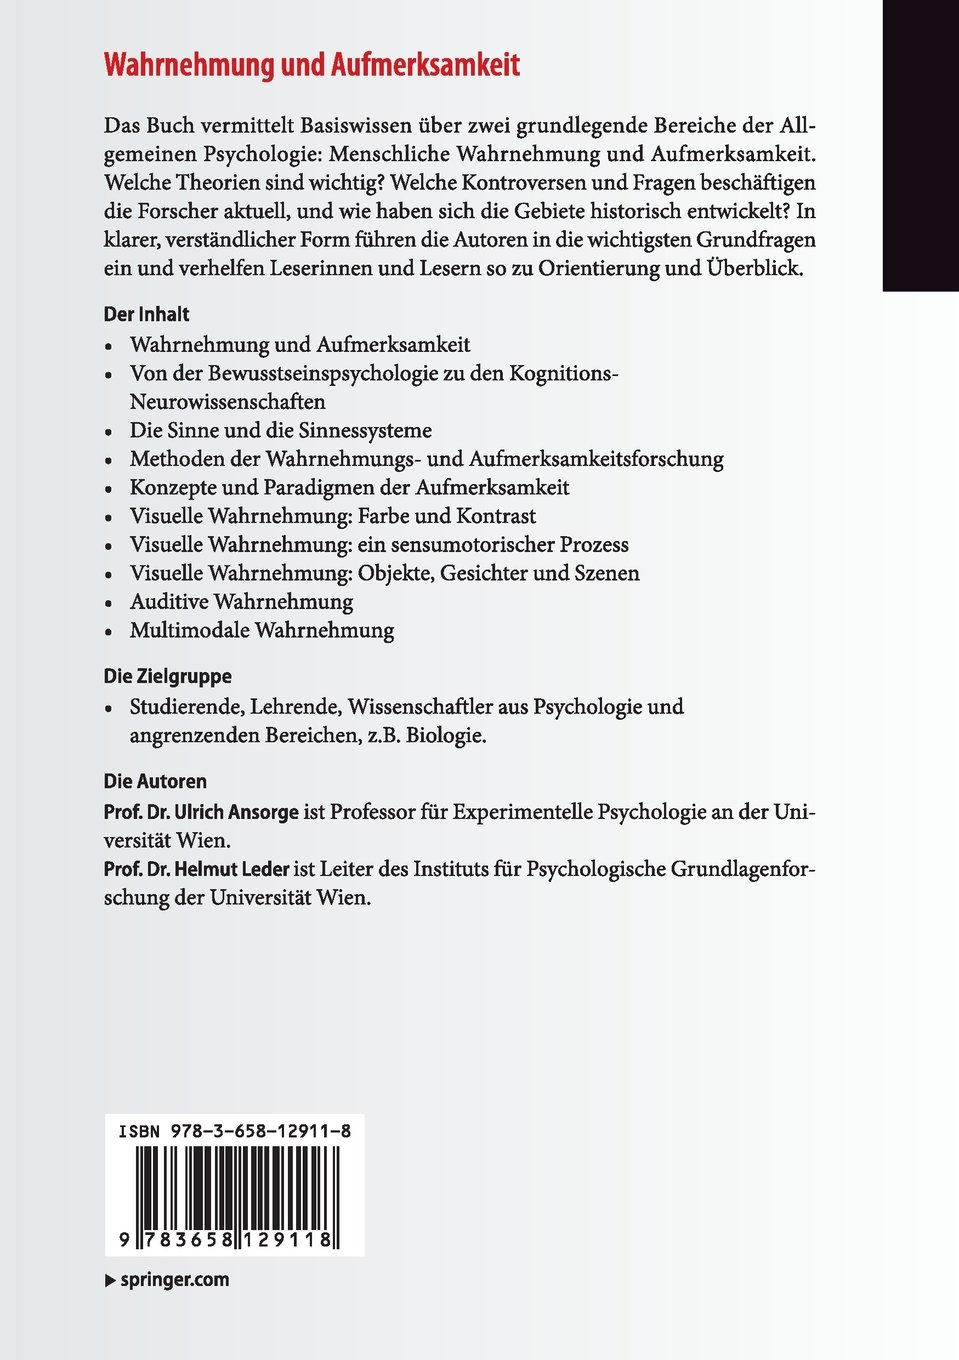 AUFMERKSAMKEIT PSYCHOLOGIE EBOOK DOWNLOAD